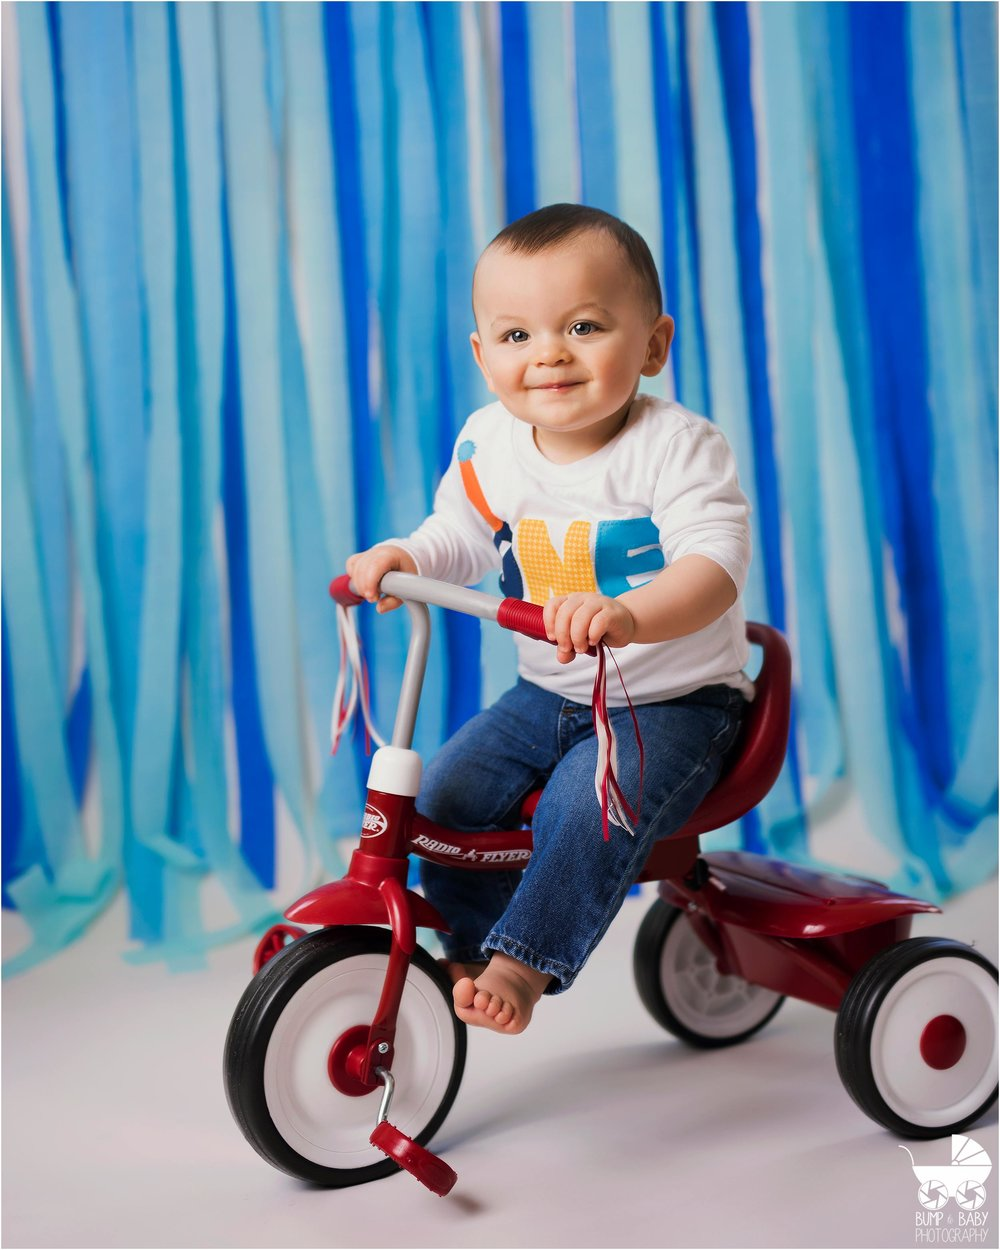 Cake_smash_session_baby_boy_Blue_themed_birthday_portrait_red_bike.jpg